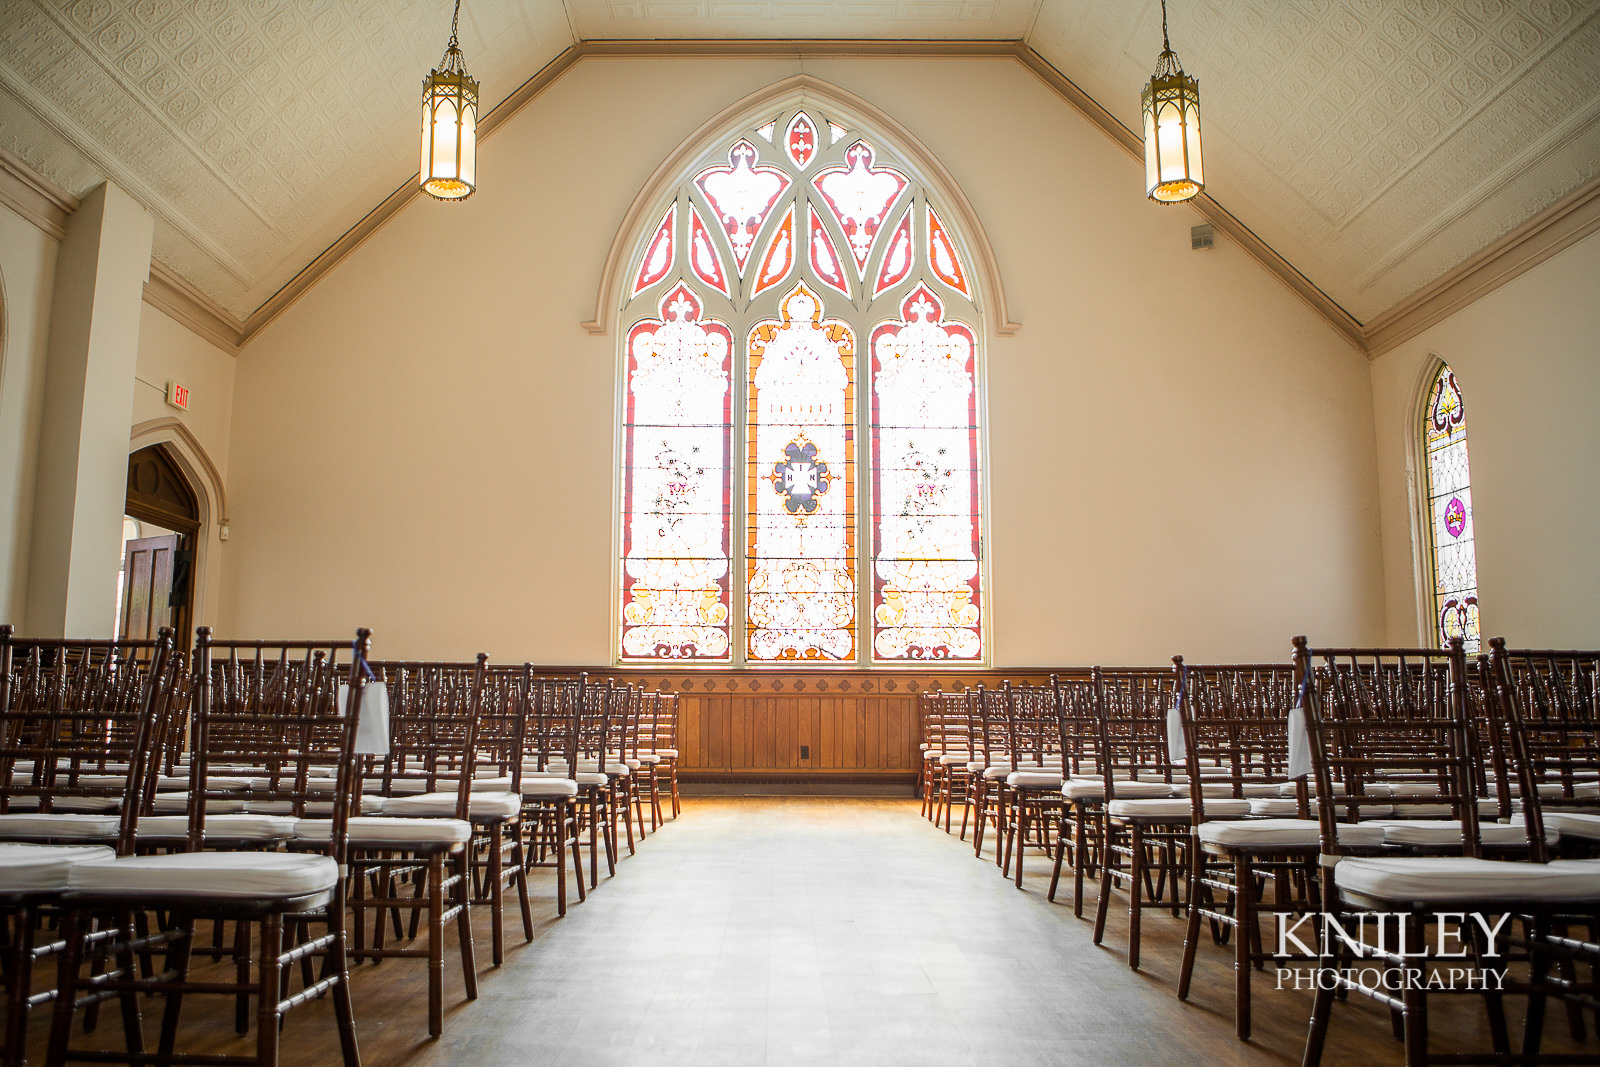 019 - Westminster Chapel - Rochester NY wedding photo - Kniley Photography.jpg